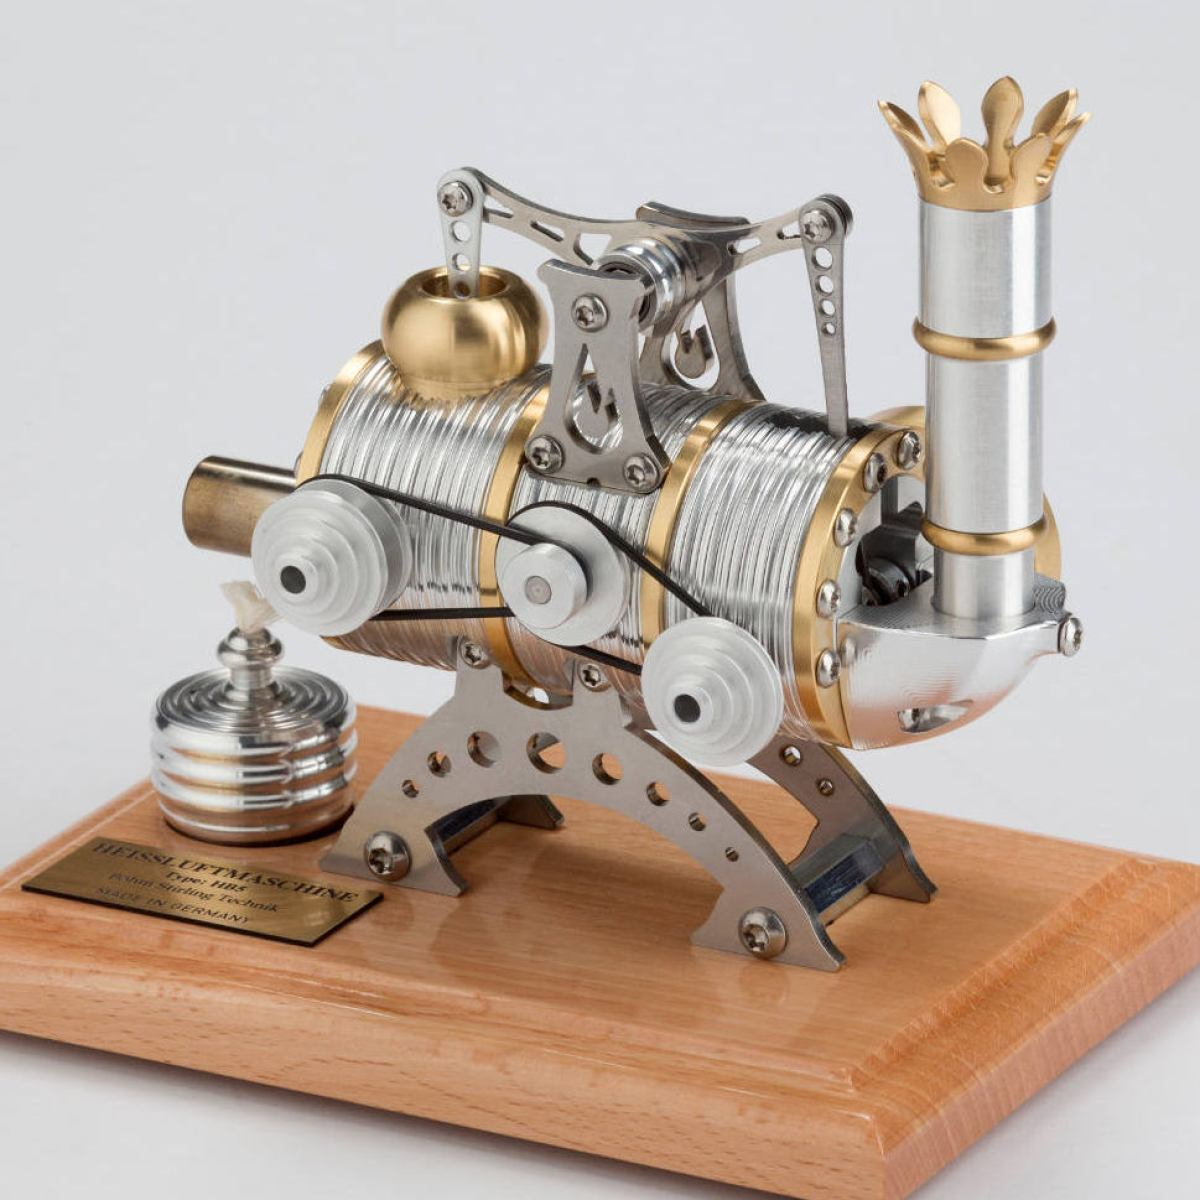 Steampunk Design Power Plant with Real Stirling Engine | Kunstbaron